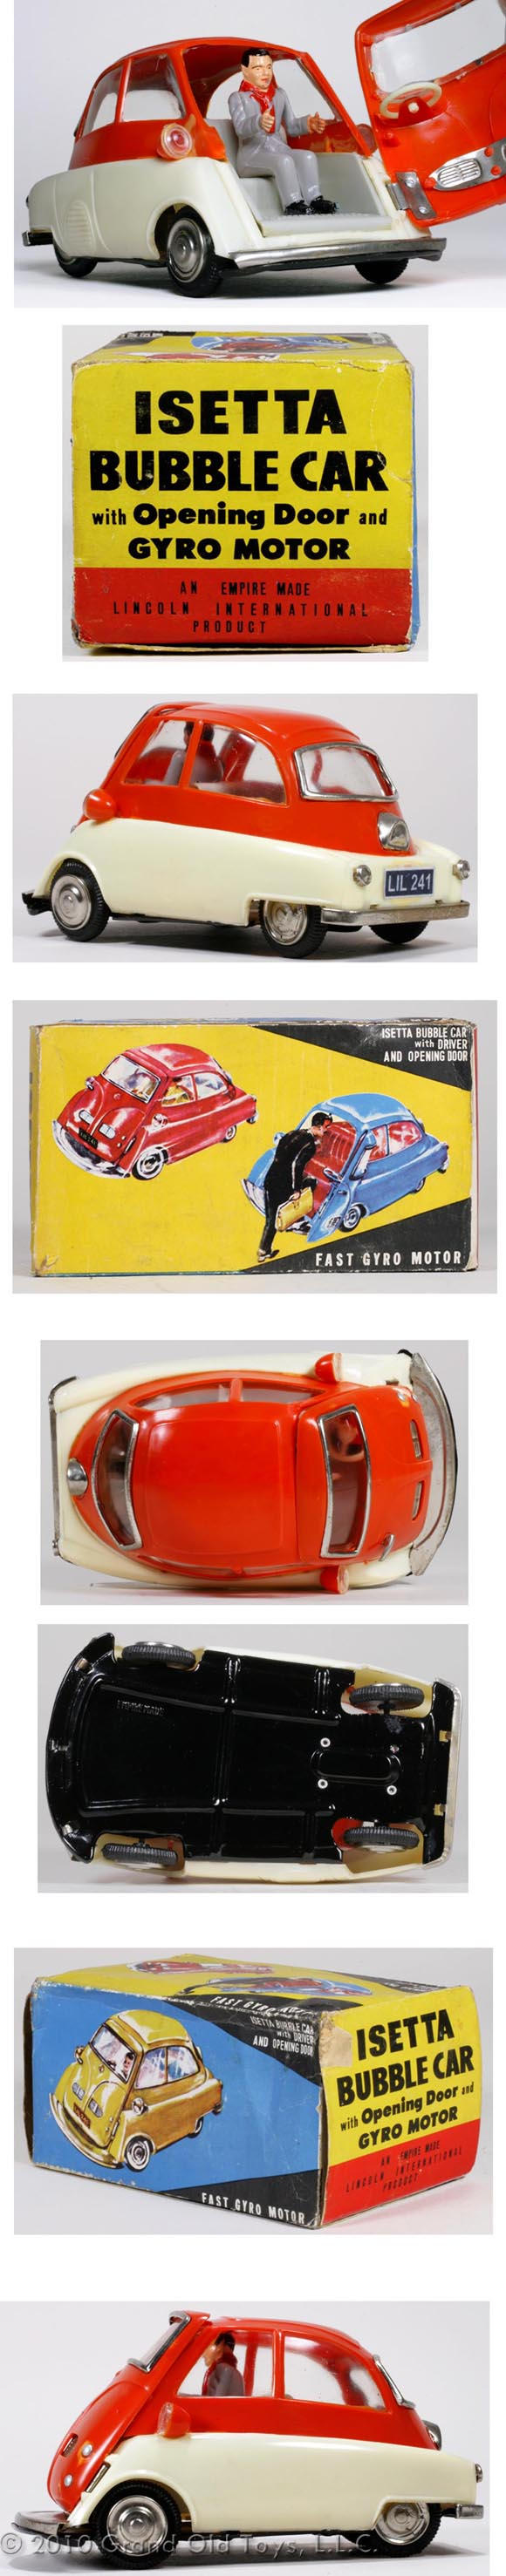 the popular BMW Isetta toy